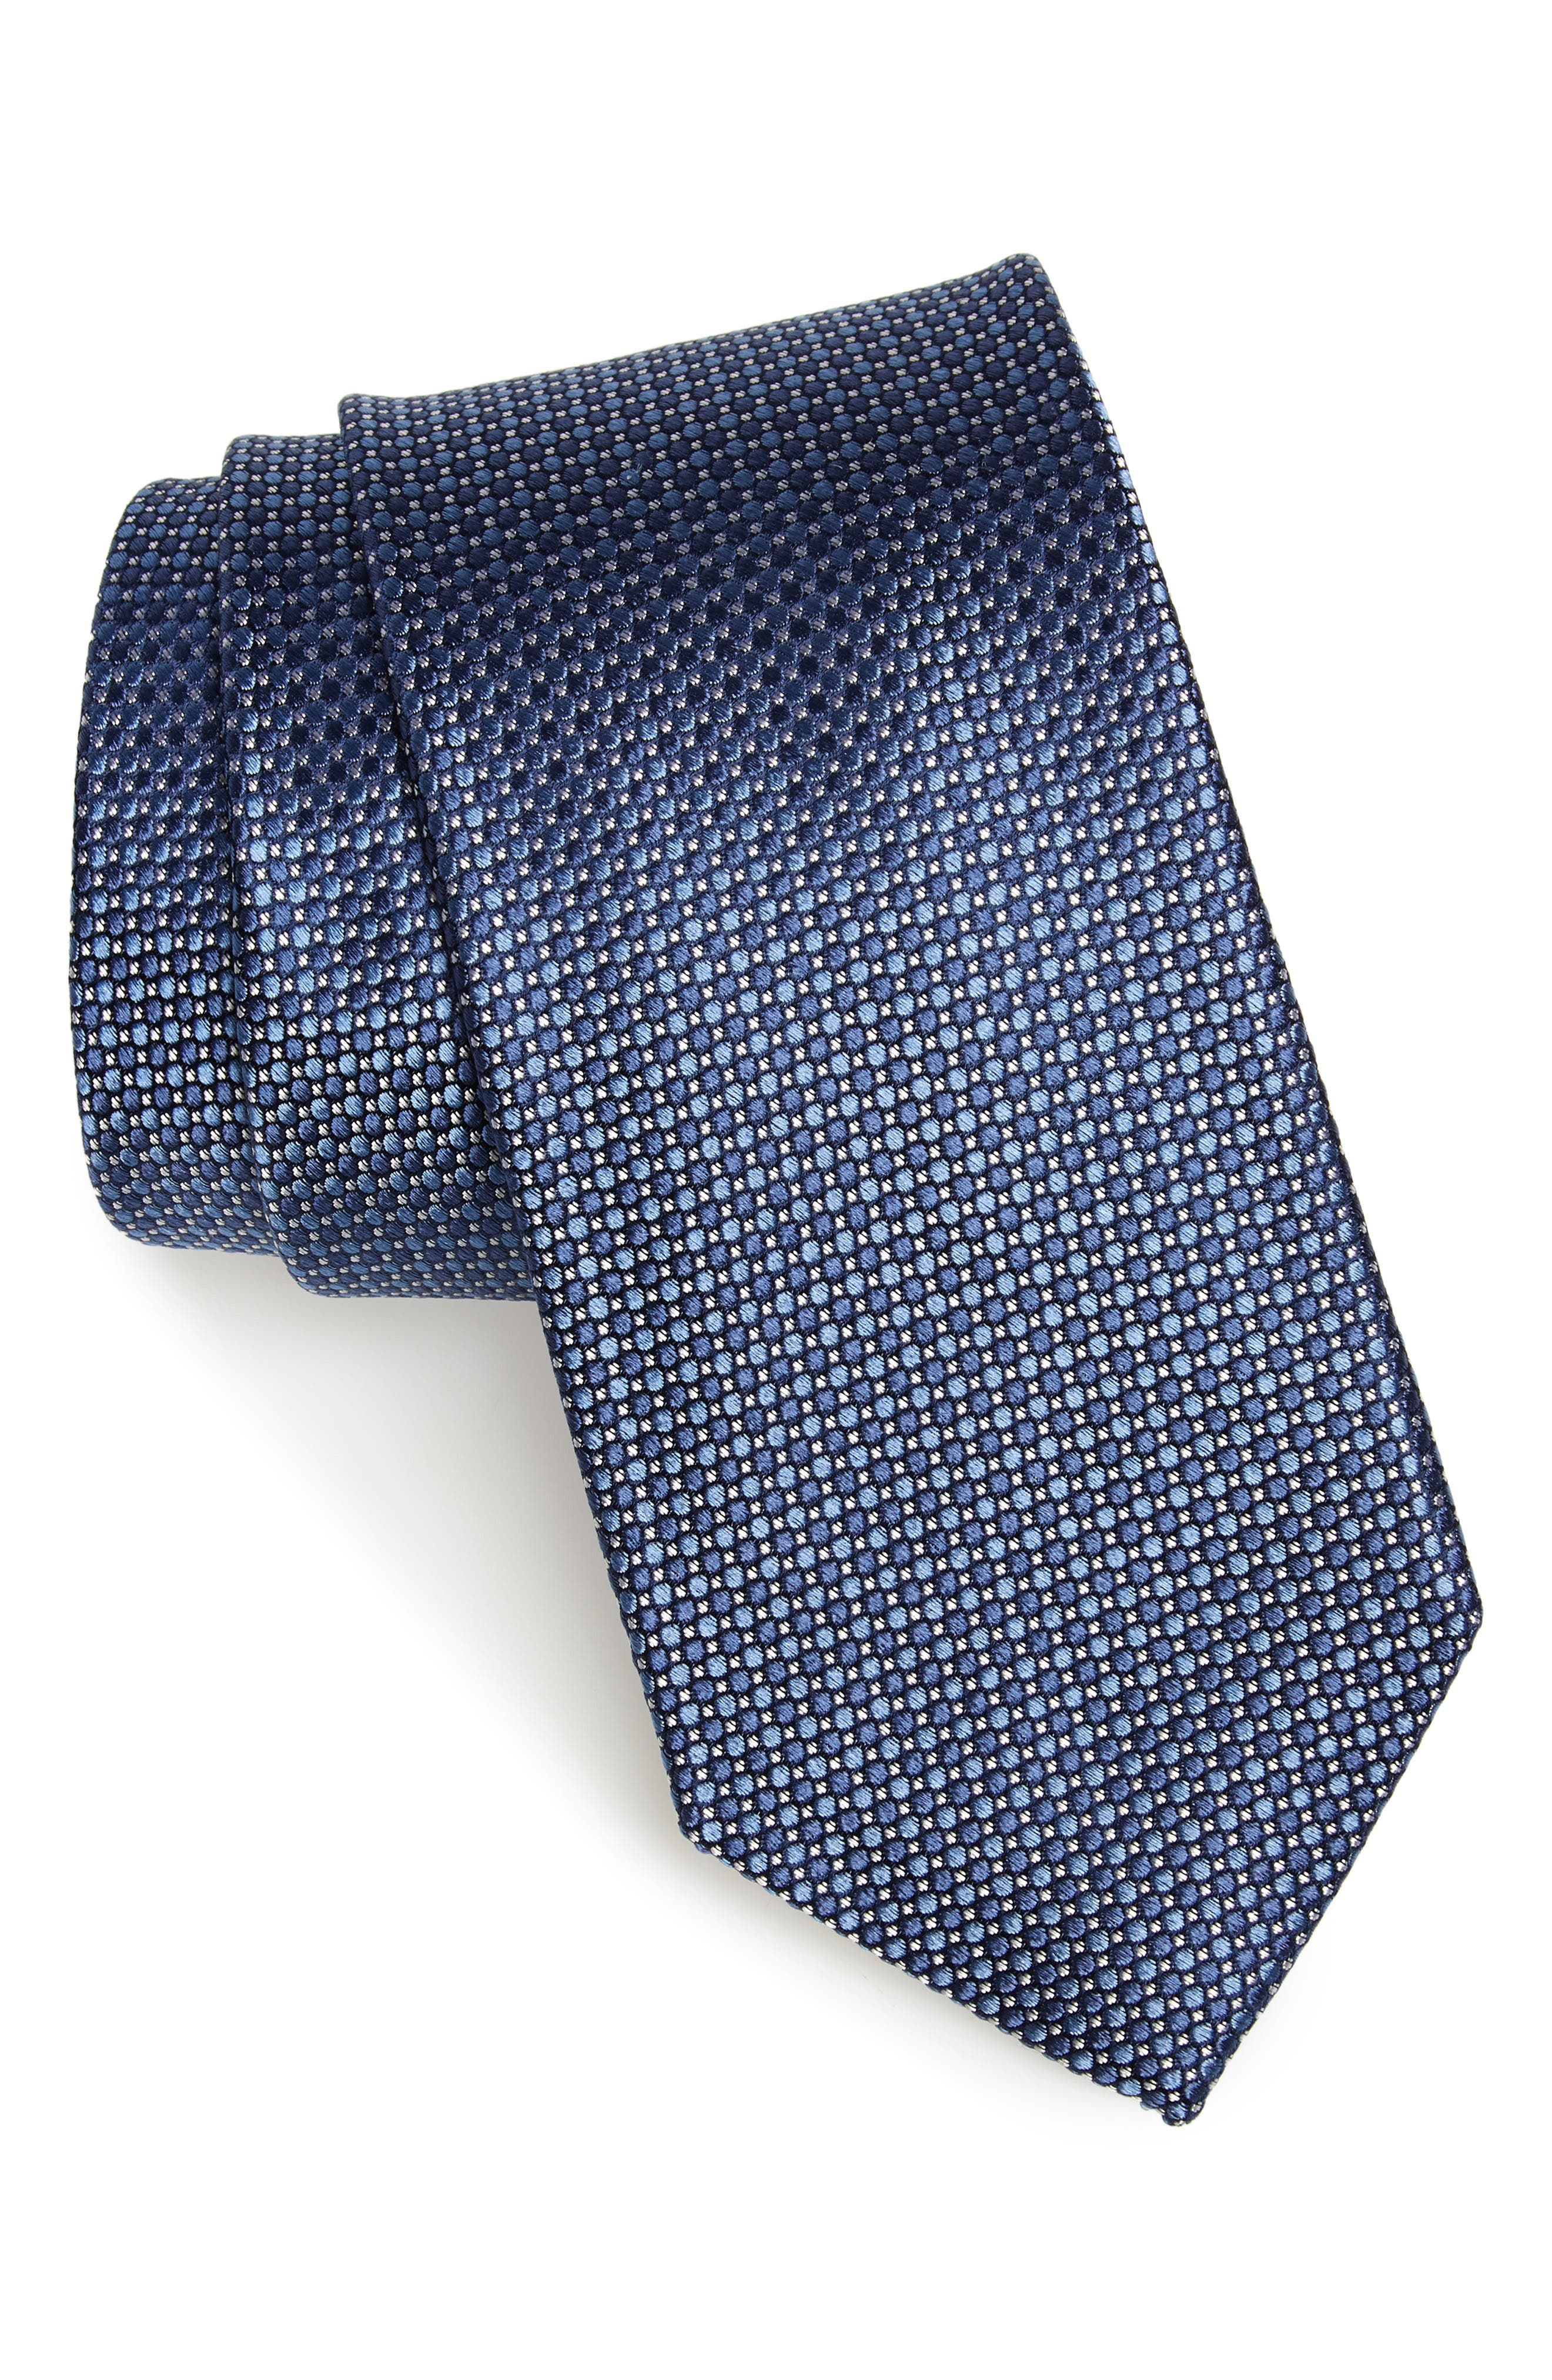 Soler Solid Silk Tie,                             Main thumbnail 1, color,                             NAVY